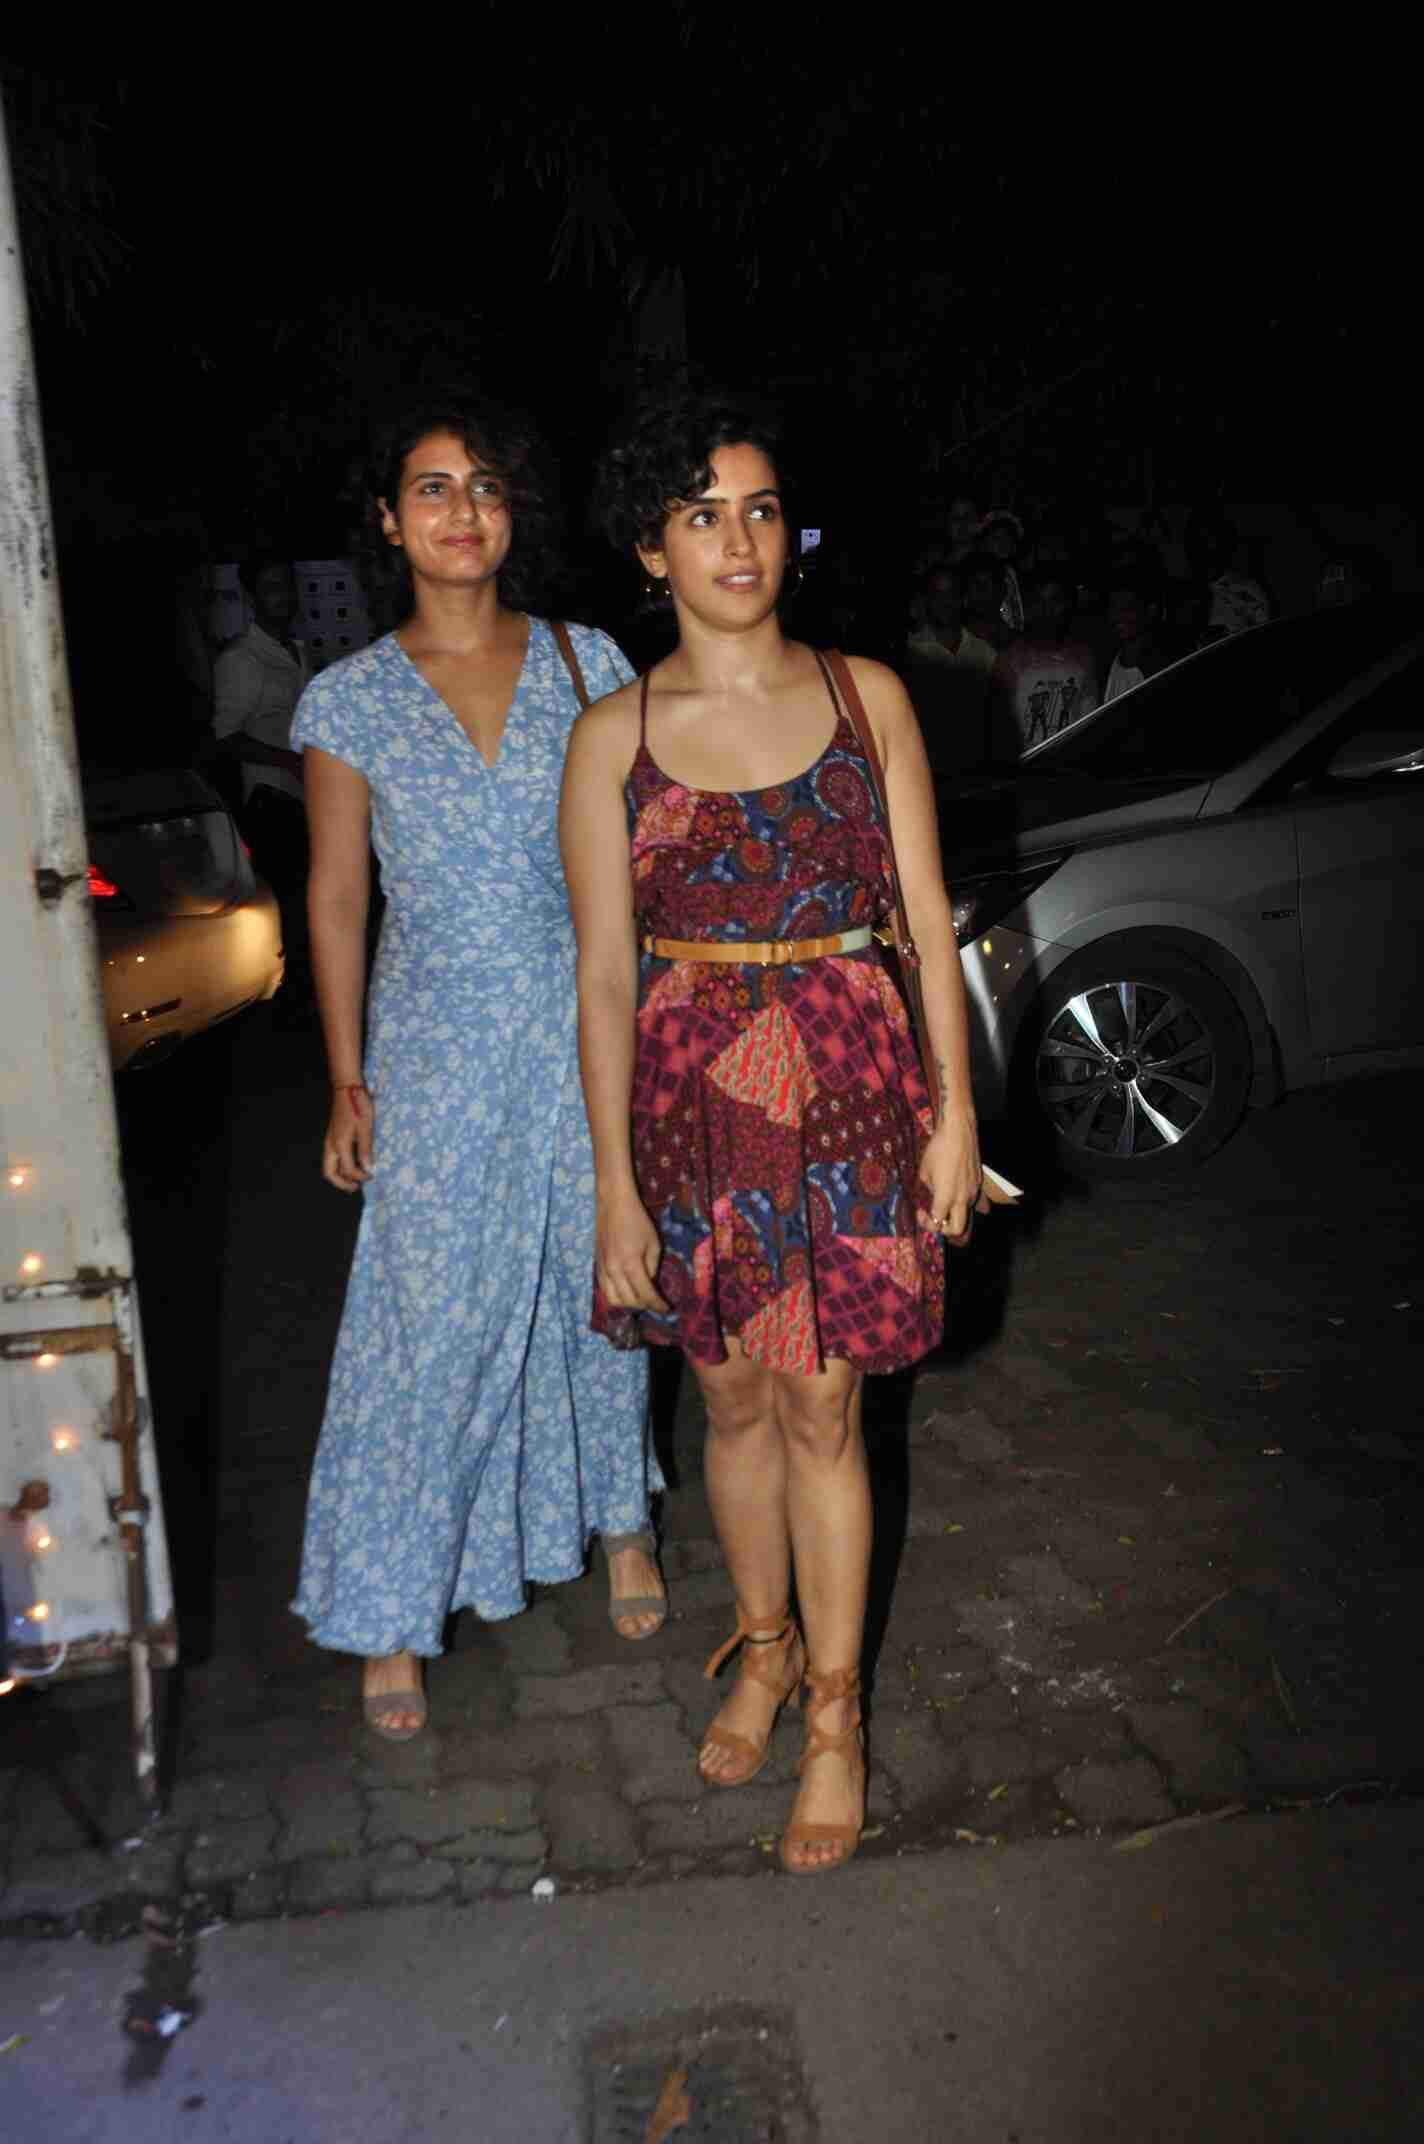 See the latest pictures of fatima sana shaikh and sanya malhotra